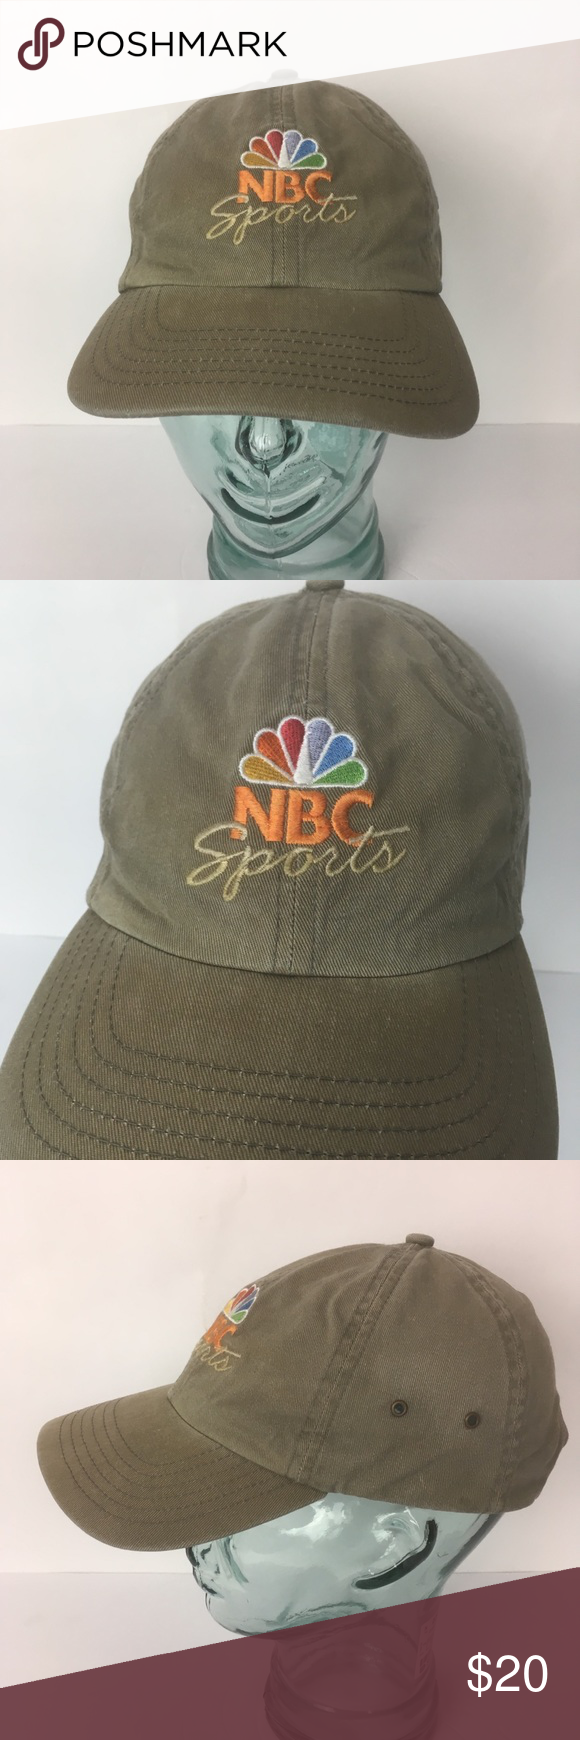 NBC sports peacock logo hat NBC sports peacock logo hat